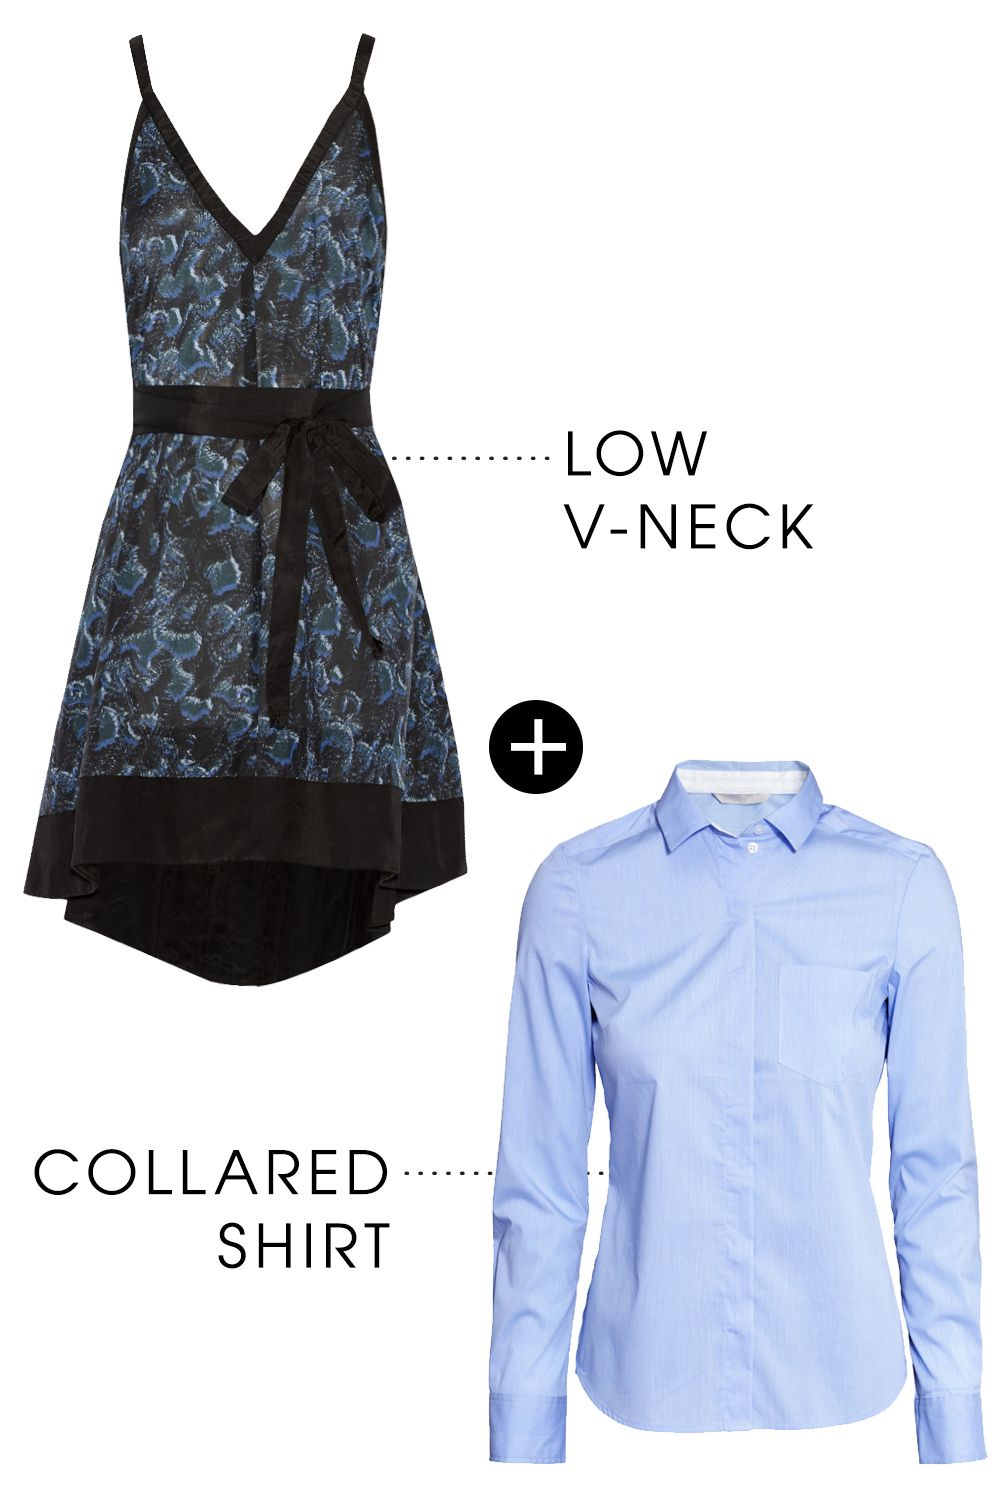 """<p>You may not automatically think to layer a collared shirt under a v-neck dress, but the result is always a high-fashion hit. Choose a fitted shirt and button it all the way up to the top for the coolest effect.</p><p>Proenza Schouler Printed Cotton and Silk-Blend Mini Dress, $690&#x3B; <a href=""""http://rstyle.me/n/bdbfmwbc6jf"""">net-a-porter.com</a></p><p>H&M Stretch Shirt, $20&#x3B; <a href=""""http://rstyle.me/n/bd3adwbc6jf"""">hm.com</a></p><p><br></p>"""